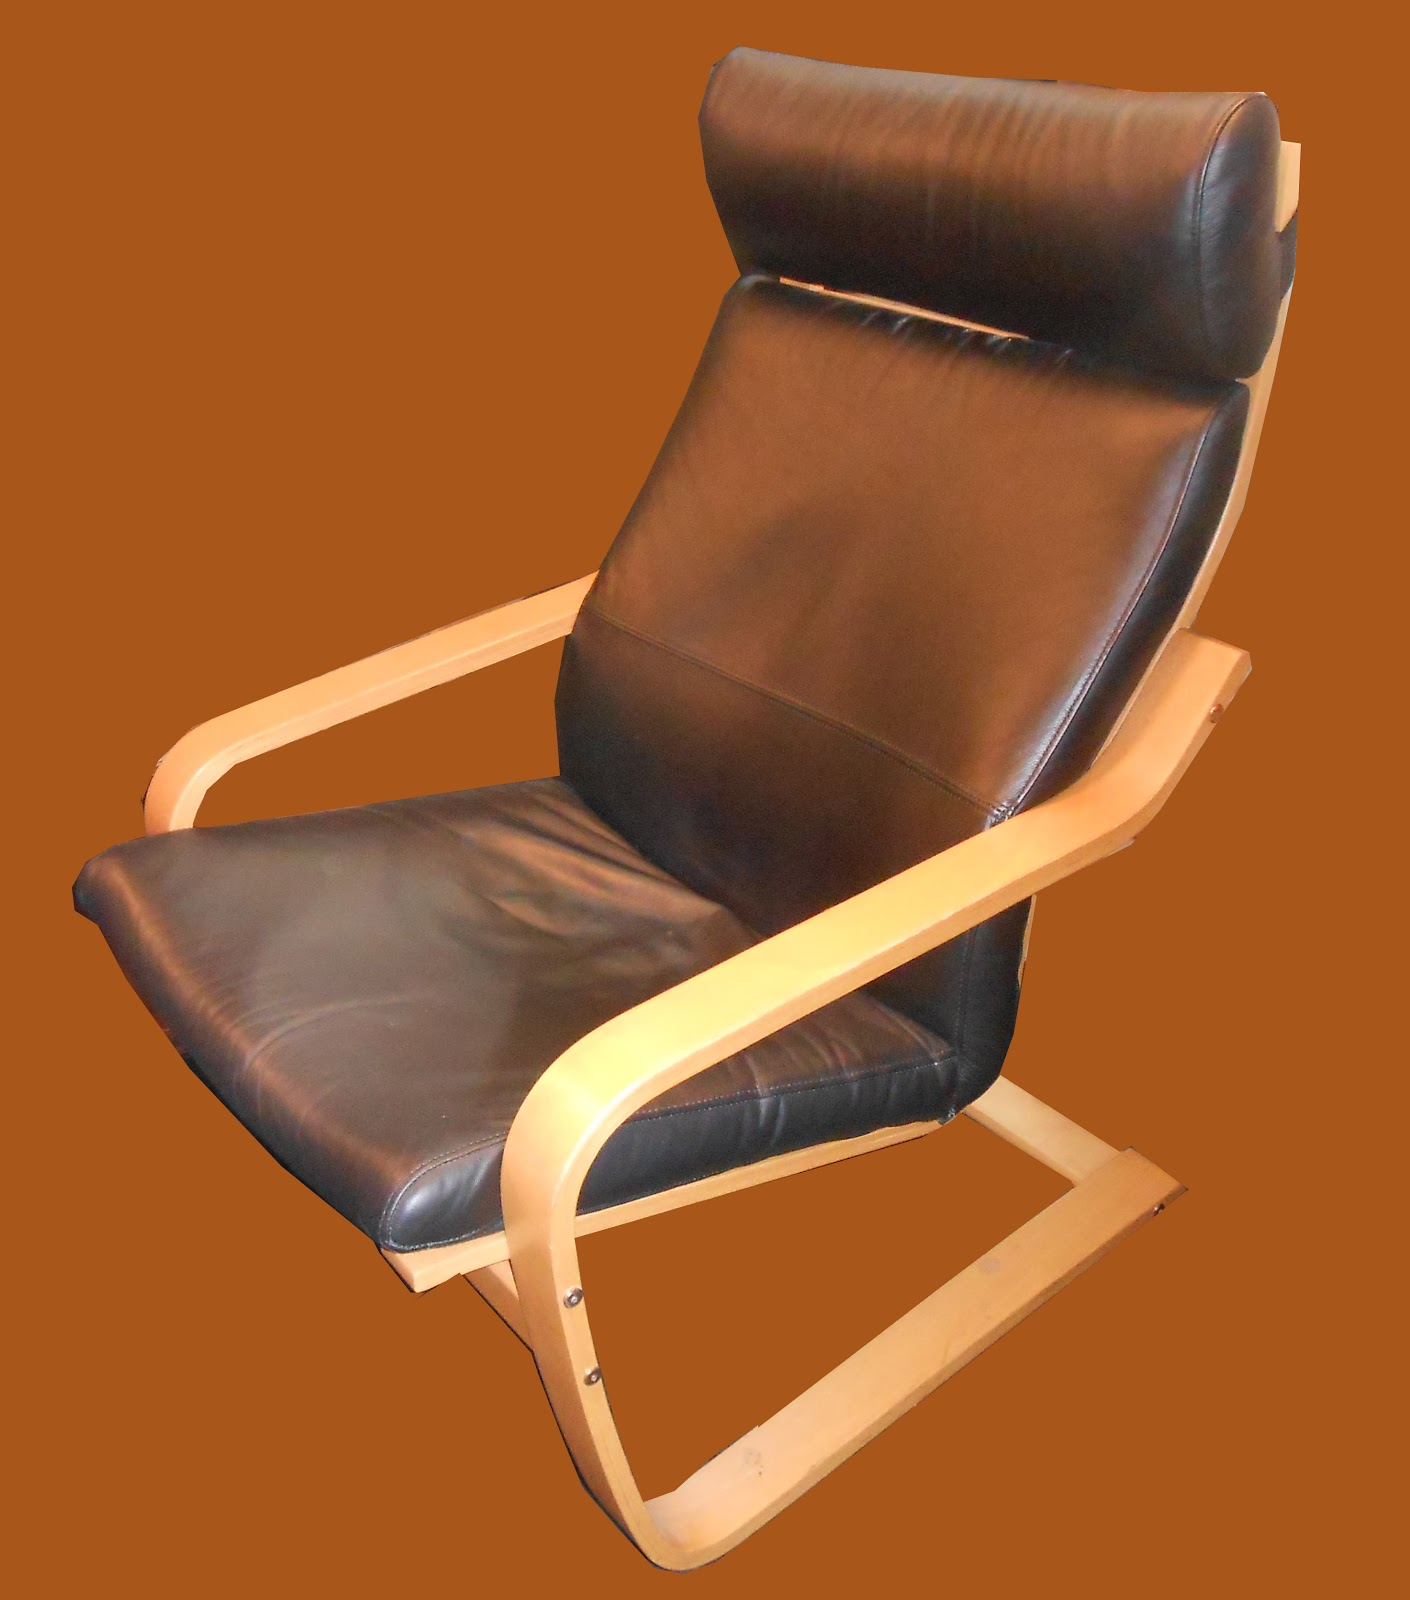 Uhuru Furniture & Collectibles: IKEA Poang Lounge Chair in